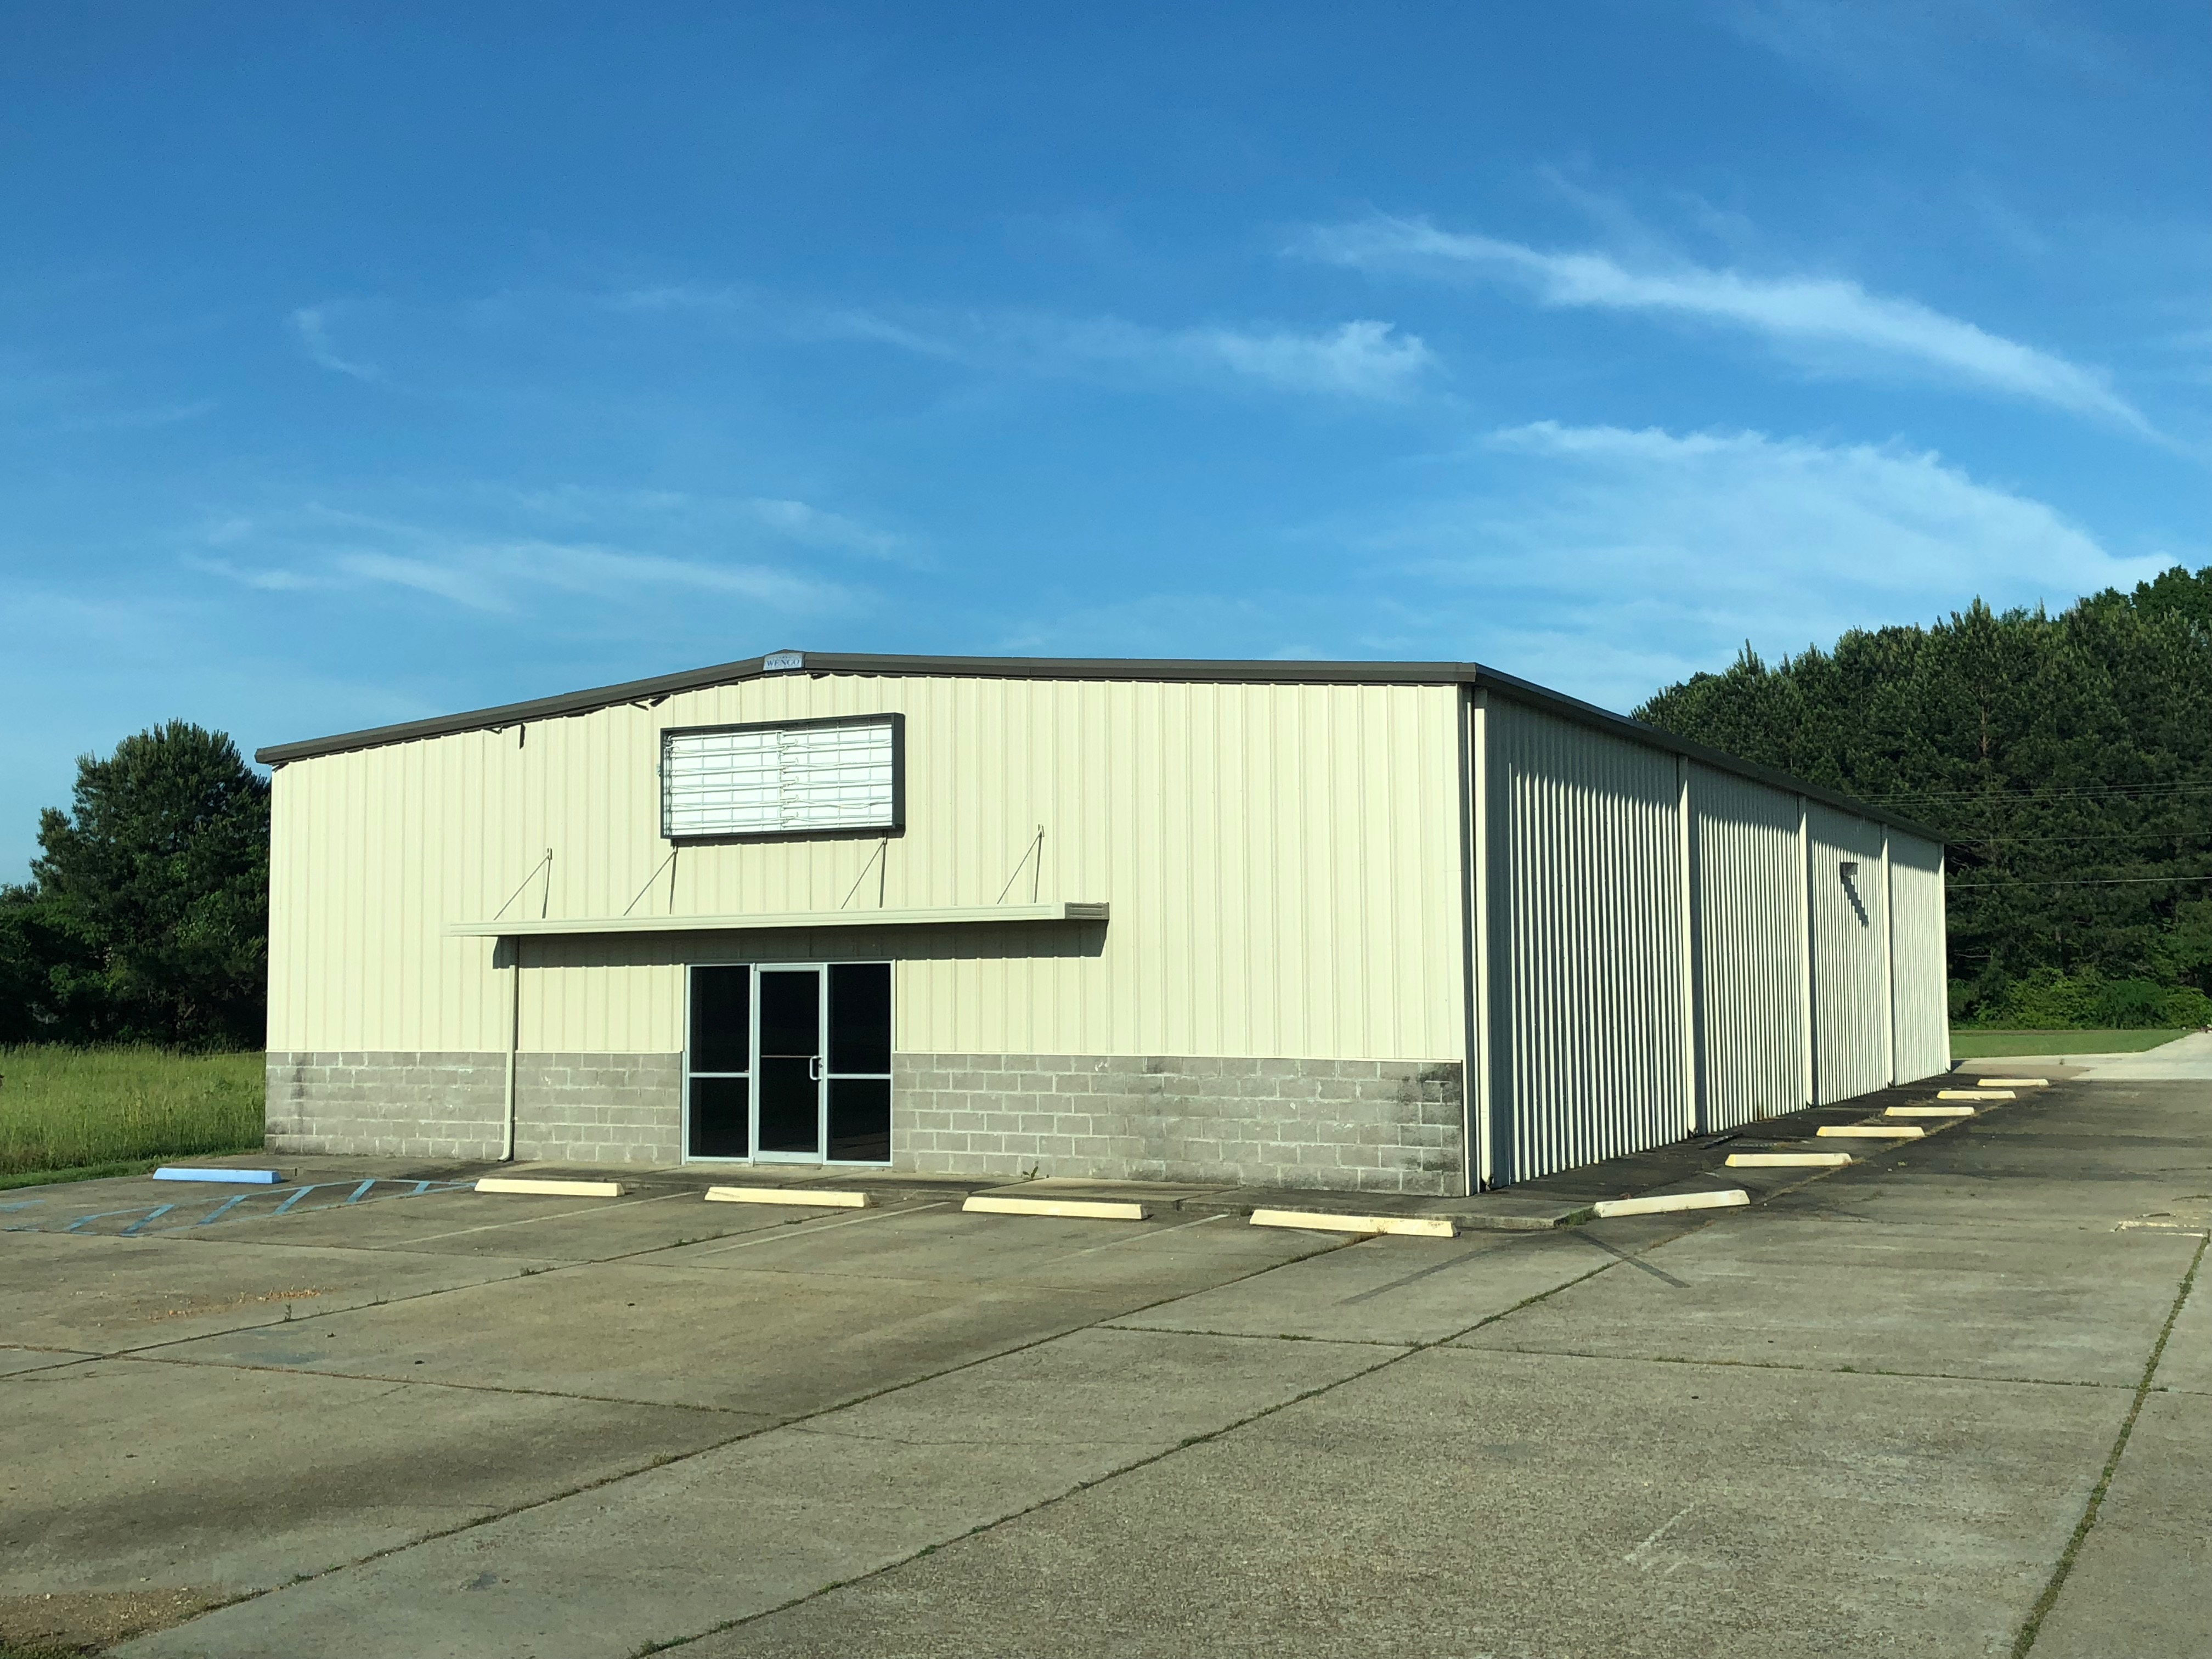 Mississippi Commercial Real Estate - OfficeSpace com